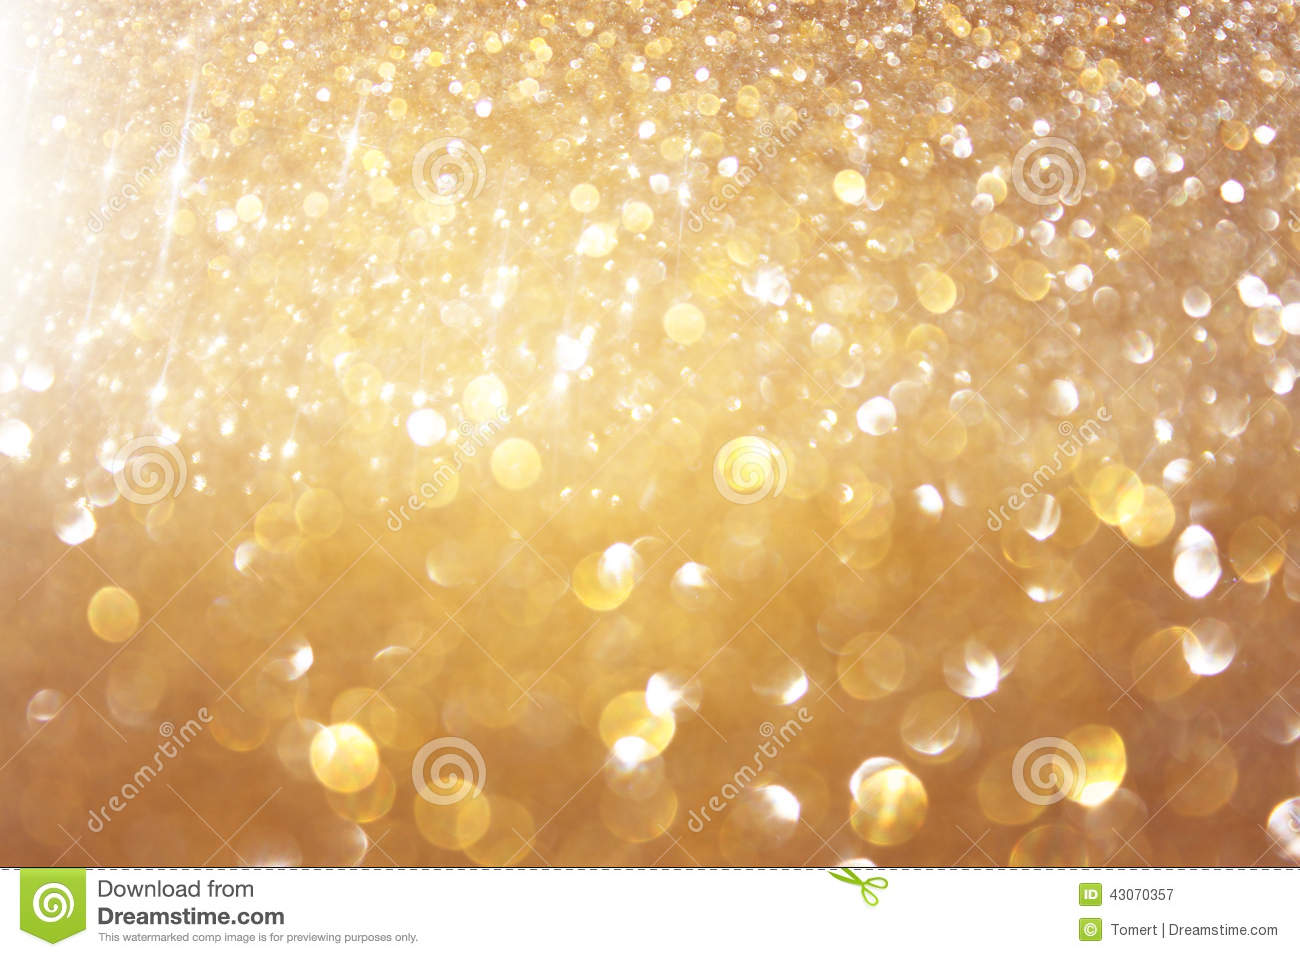 light gold vintage background - photo #13